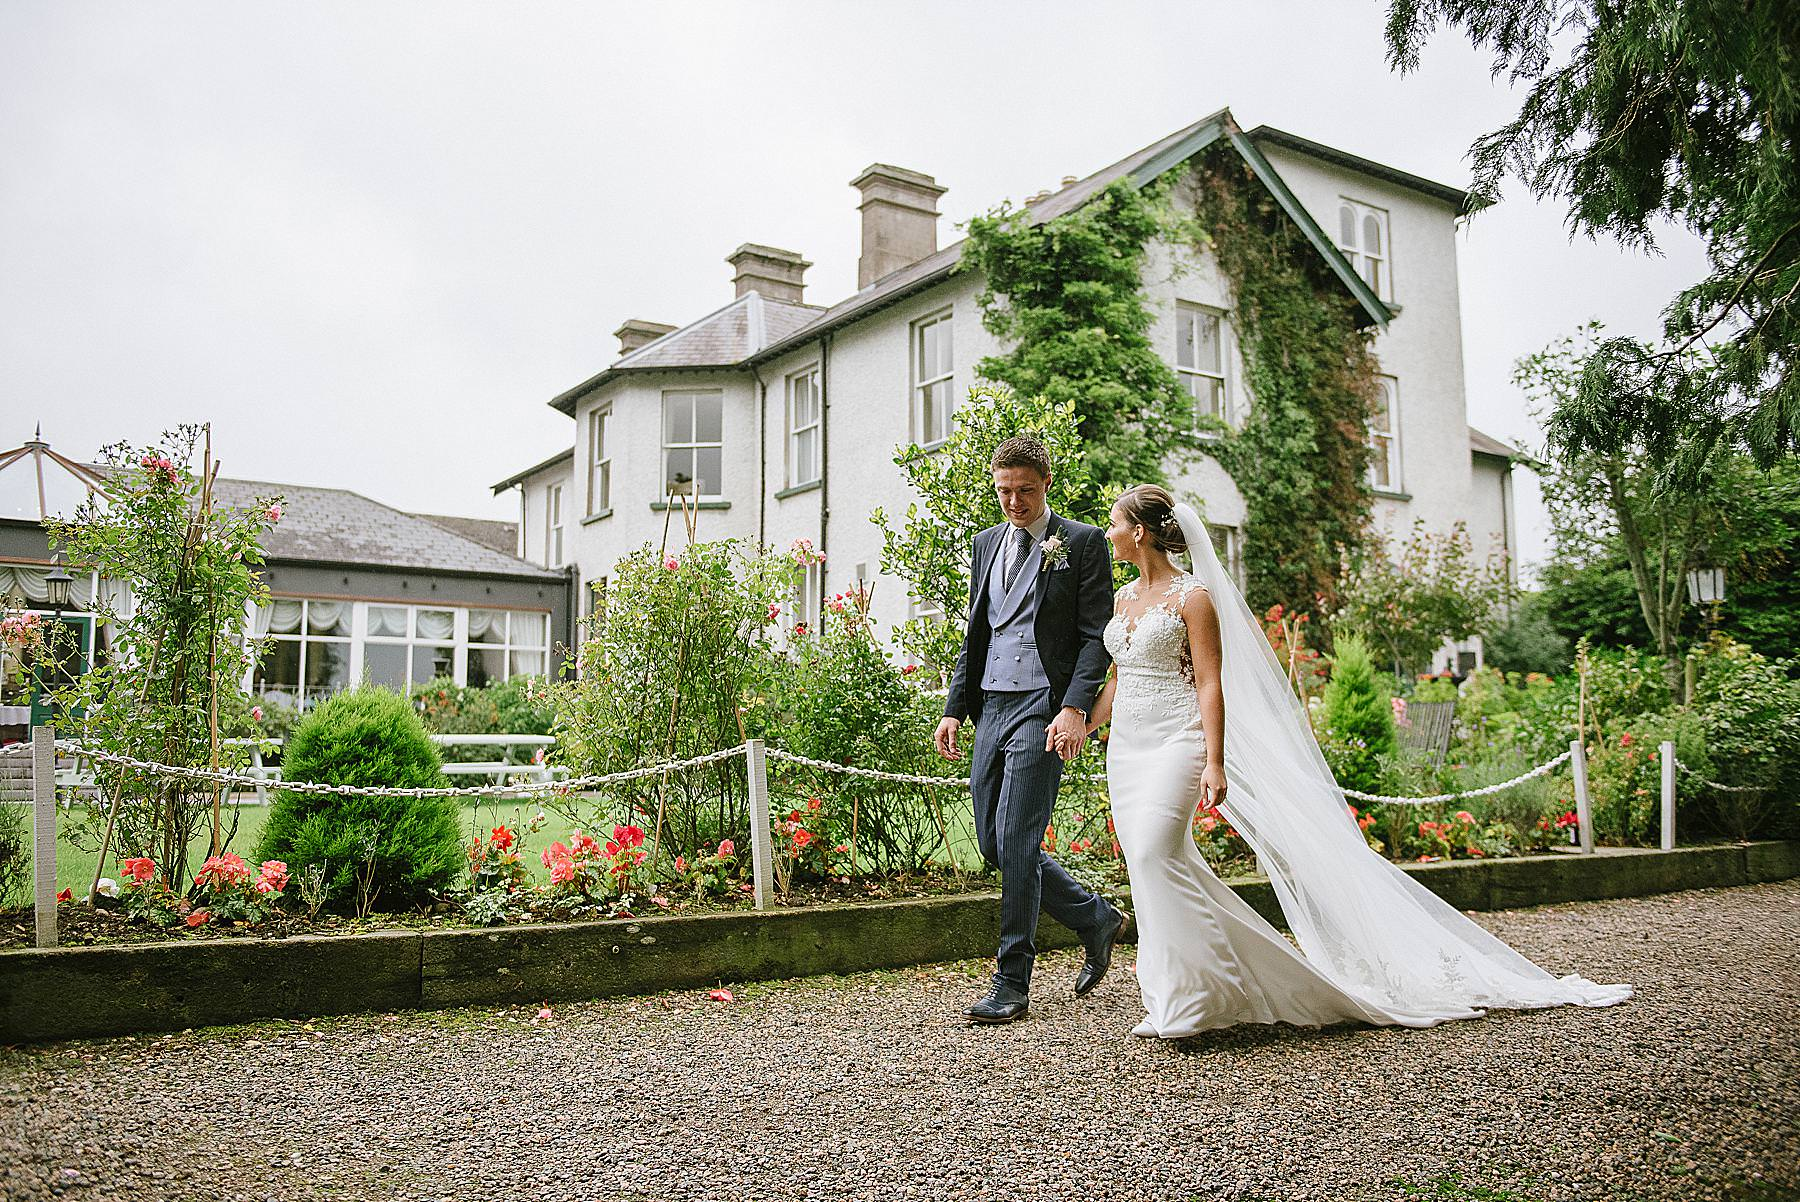 Judith & Andrew - Corick House - Wedding - Photography by Melissa (3